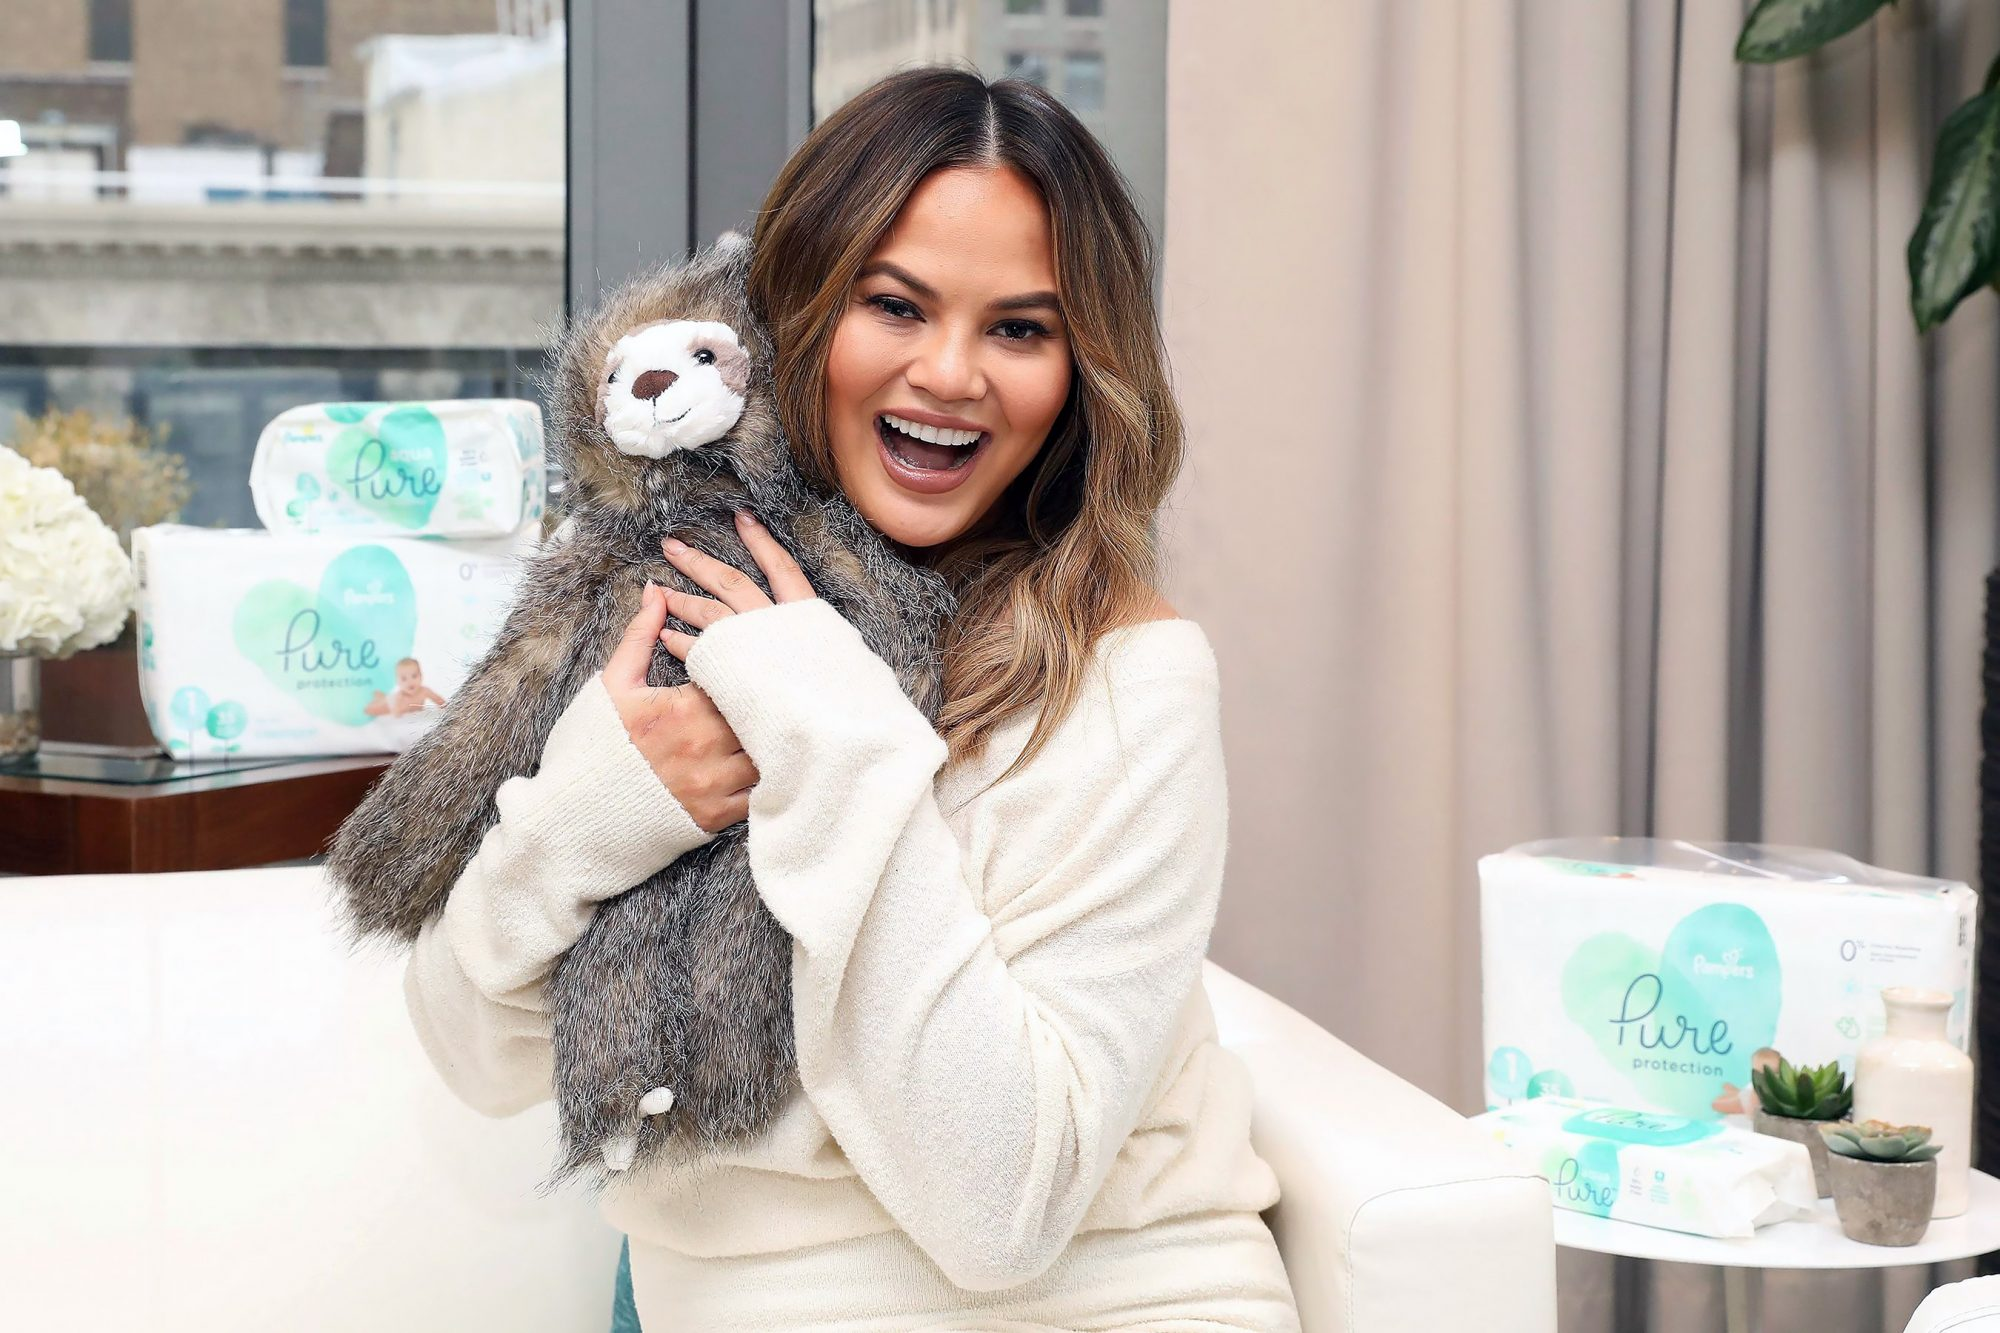 Pampers Pure Media Day, New York, USA - 27 Mar 2018